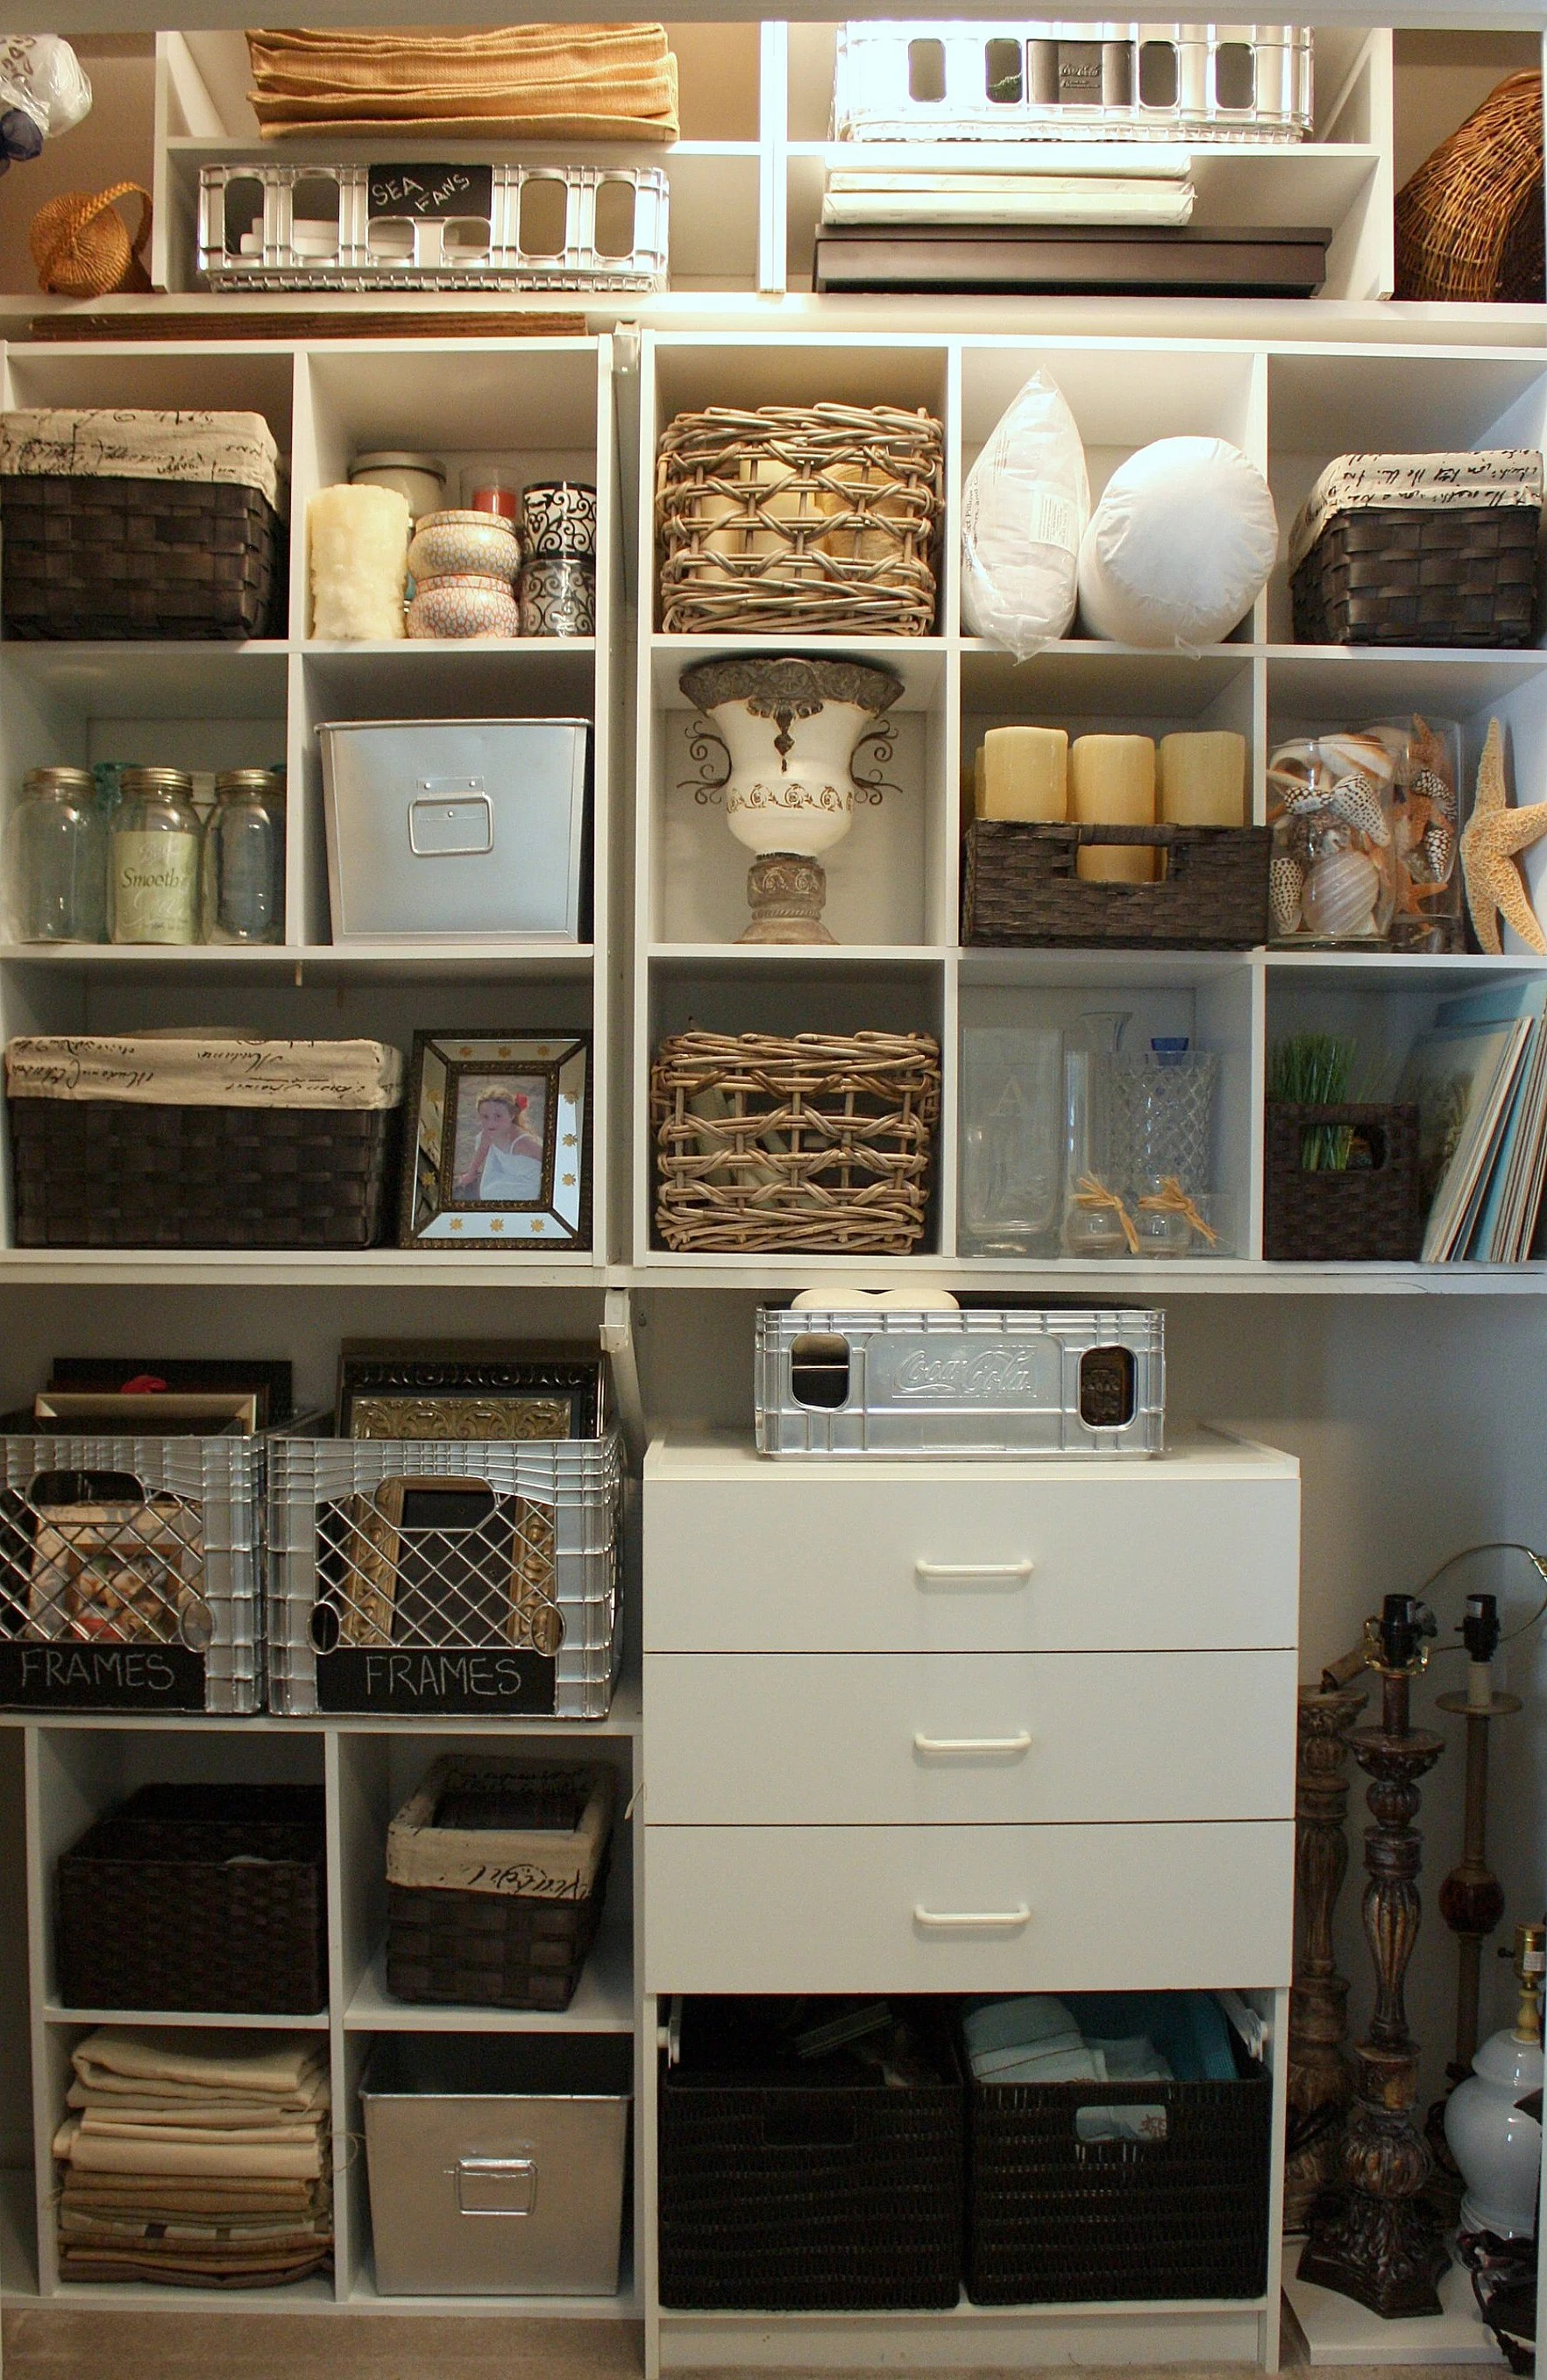 Diy Organization Ideas For Closets Organizing A Junk Closet With Cube Storage Units